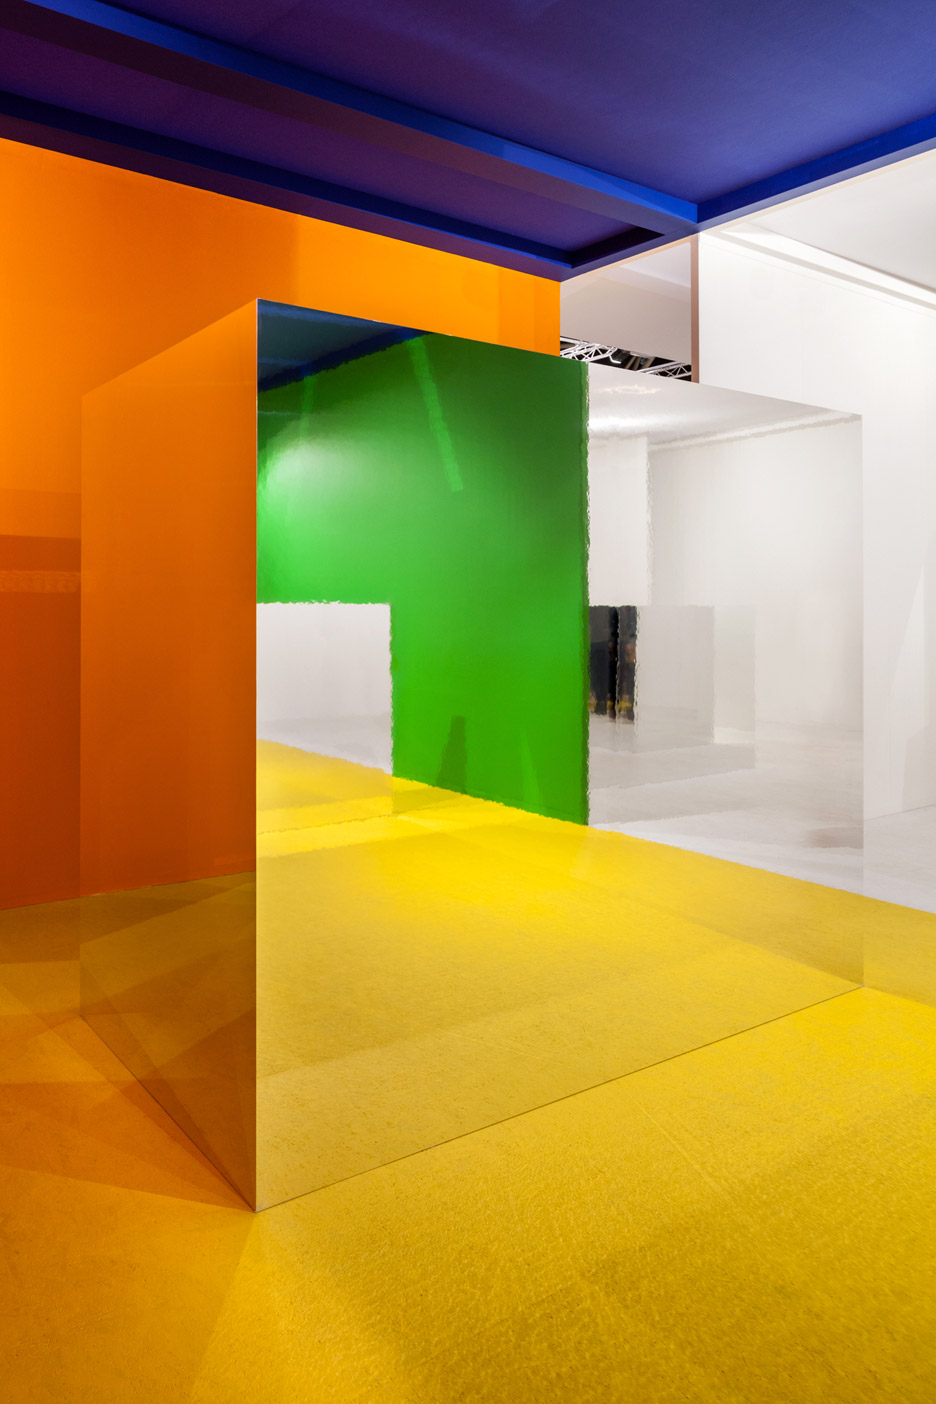 I29 Uses Multicoloured Walls And Mirrored Volumes To Create ...